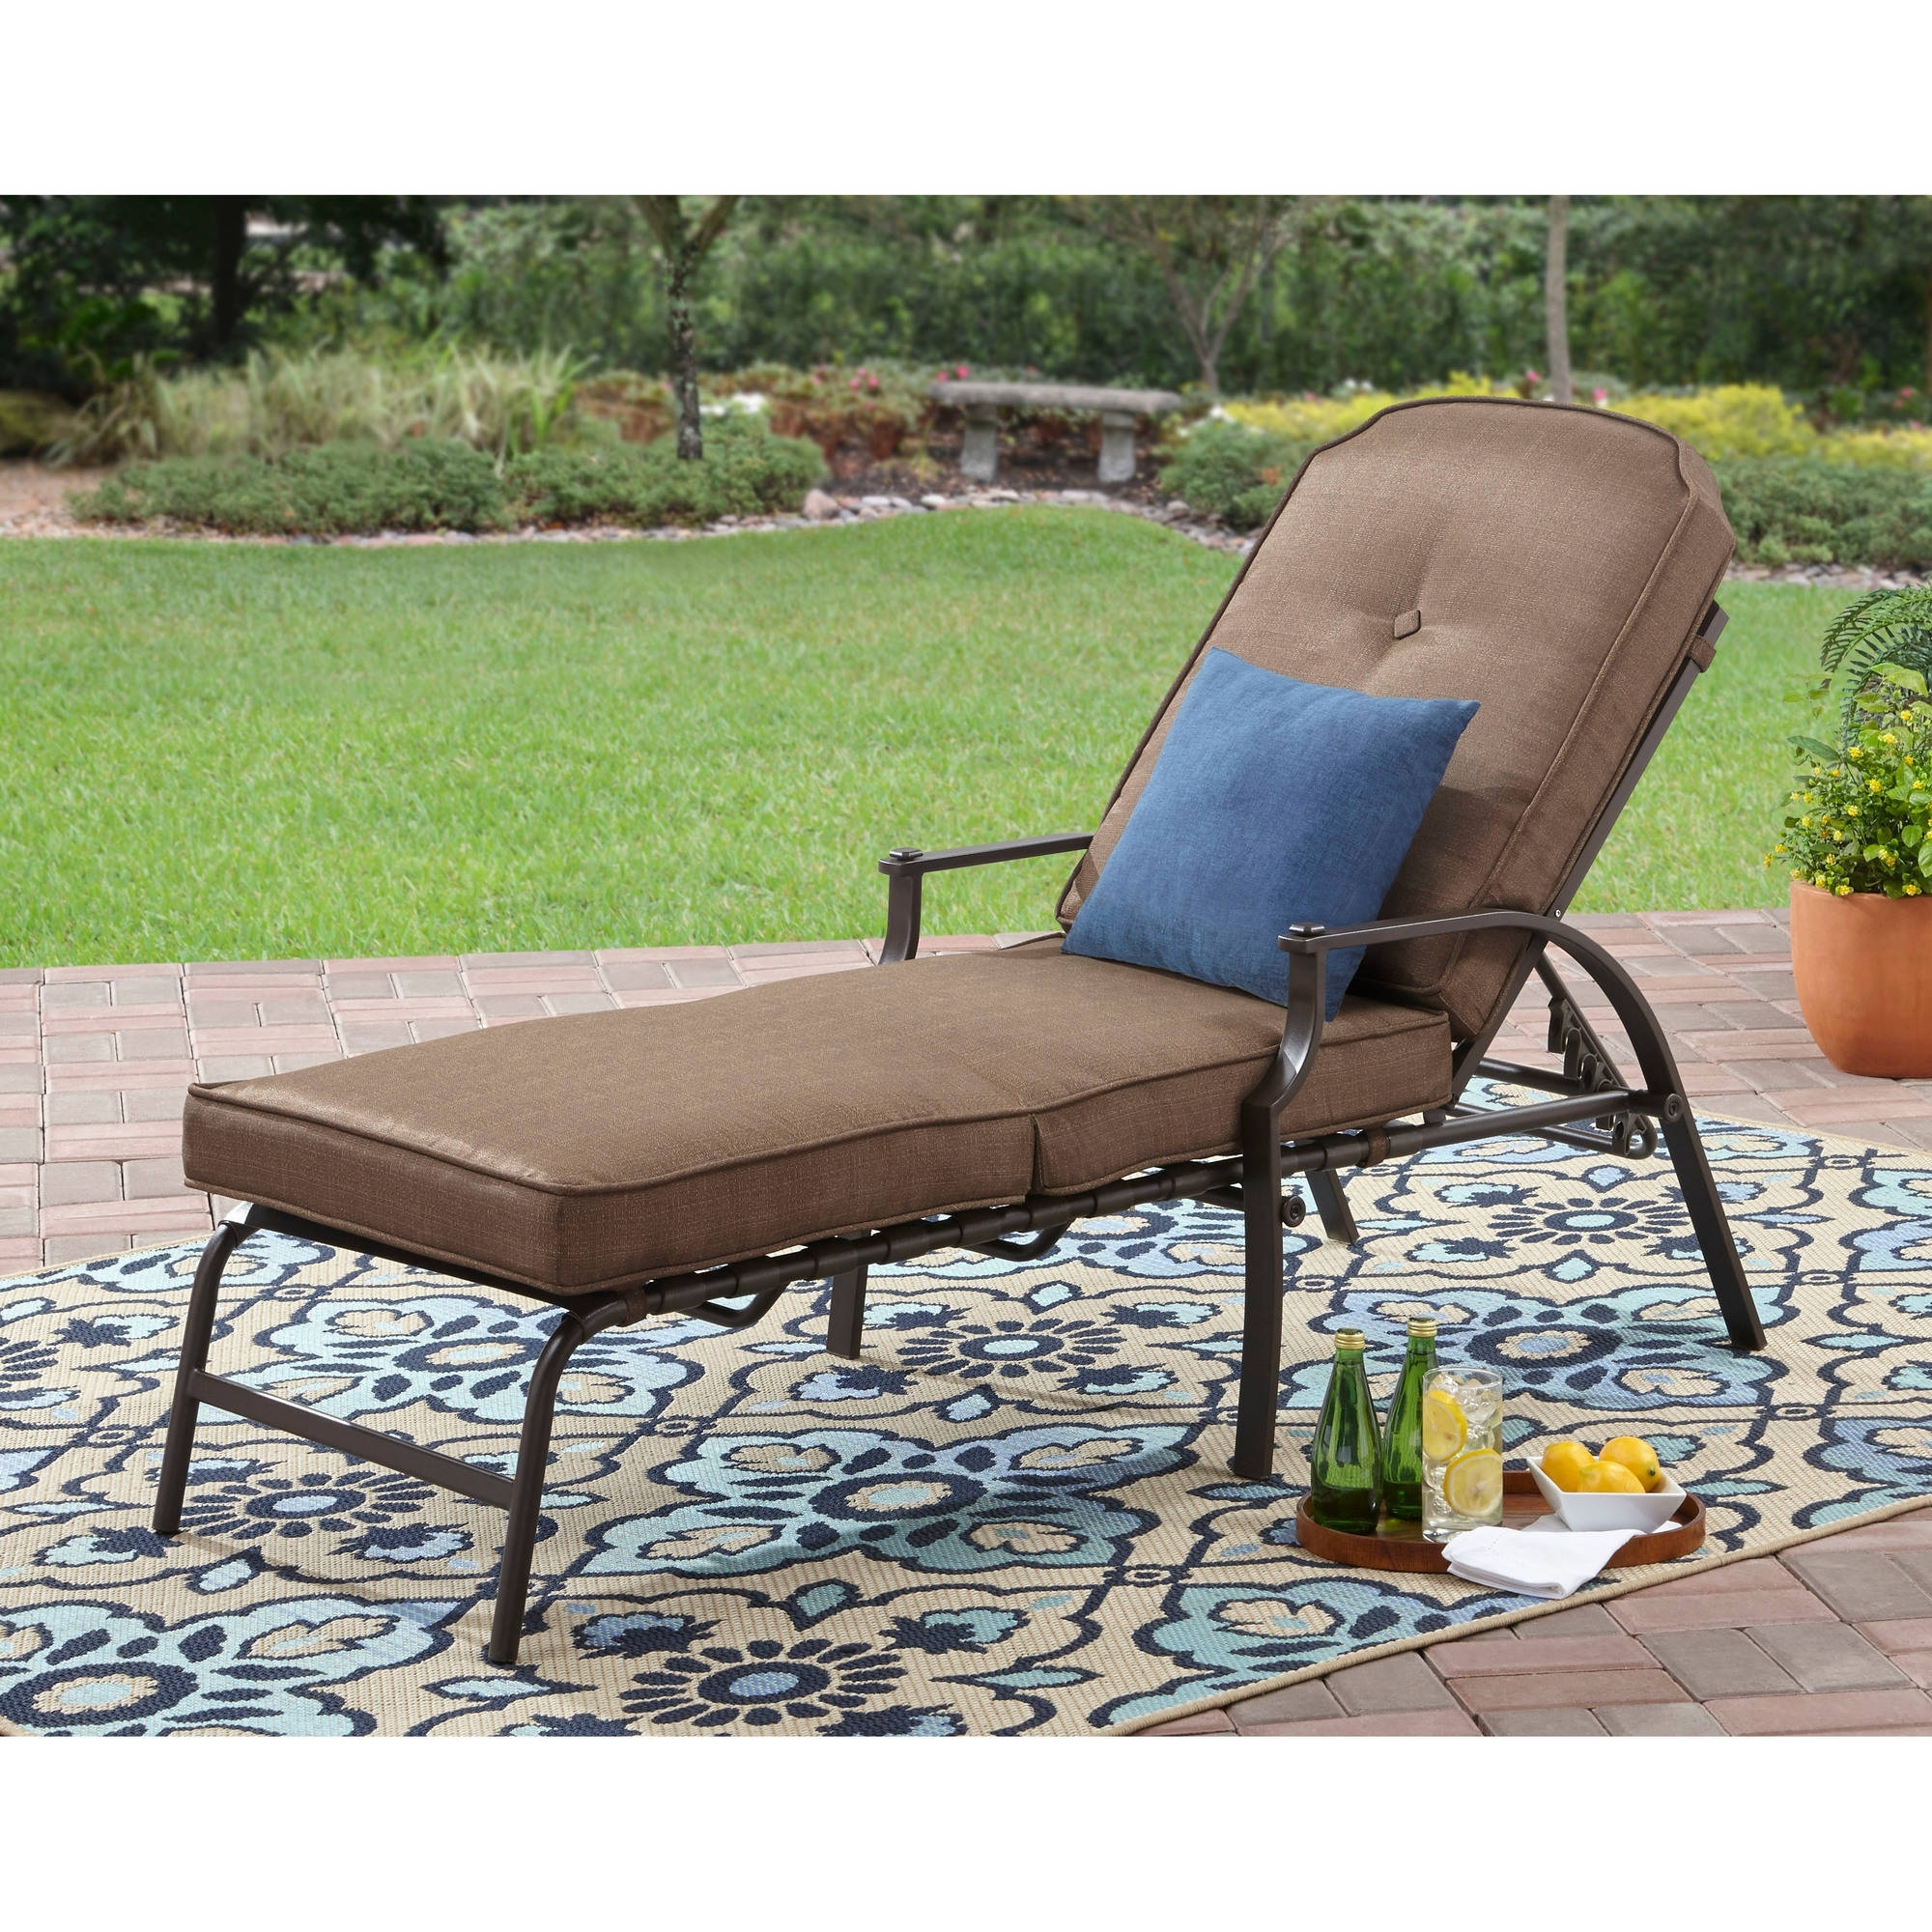 Folding Chaise Lounge Lawn Chairs In Fashionable Convertible Chair : Reclining Yard Chairs Garden Chaise Lounge (View 15 of 15)